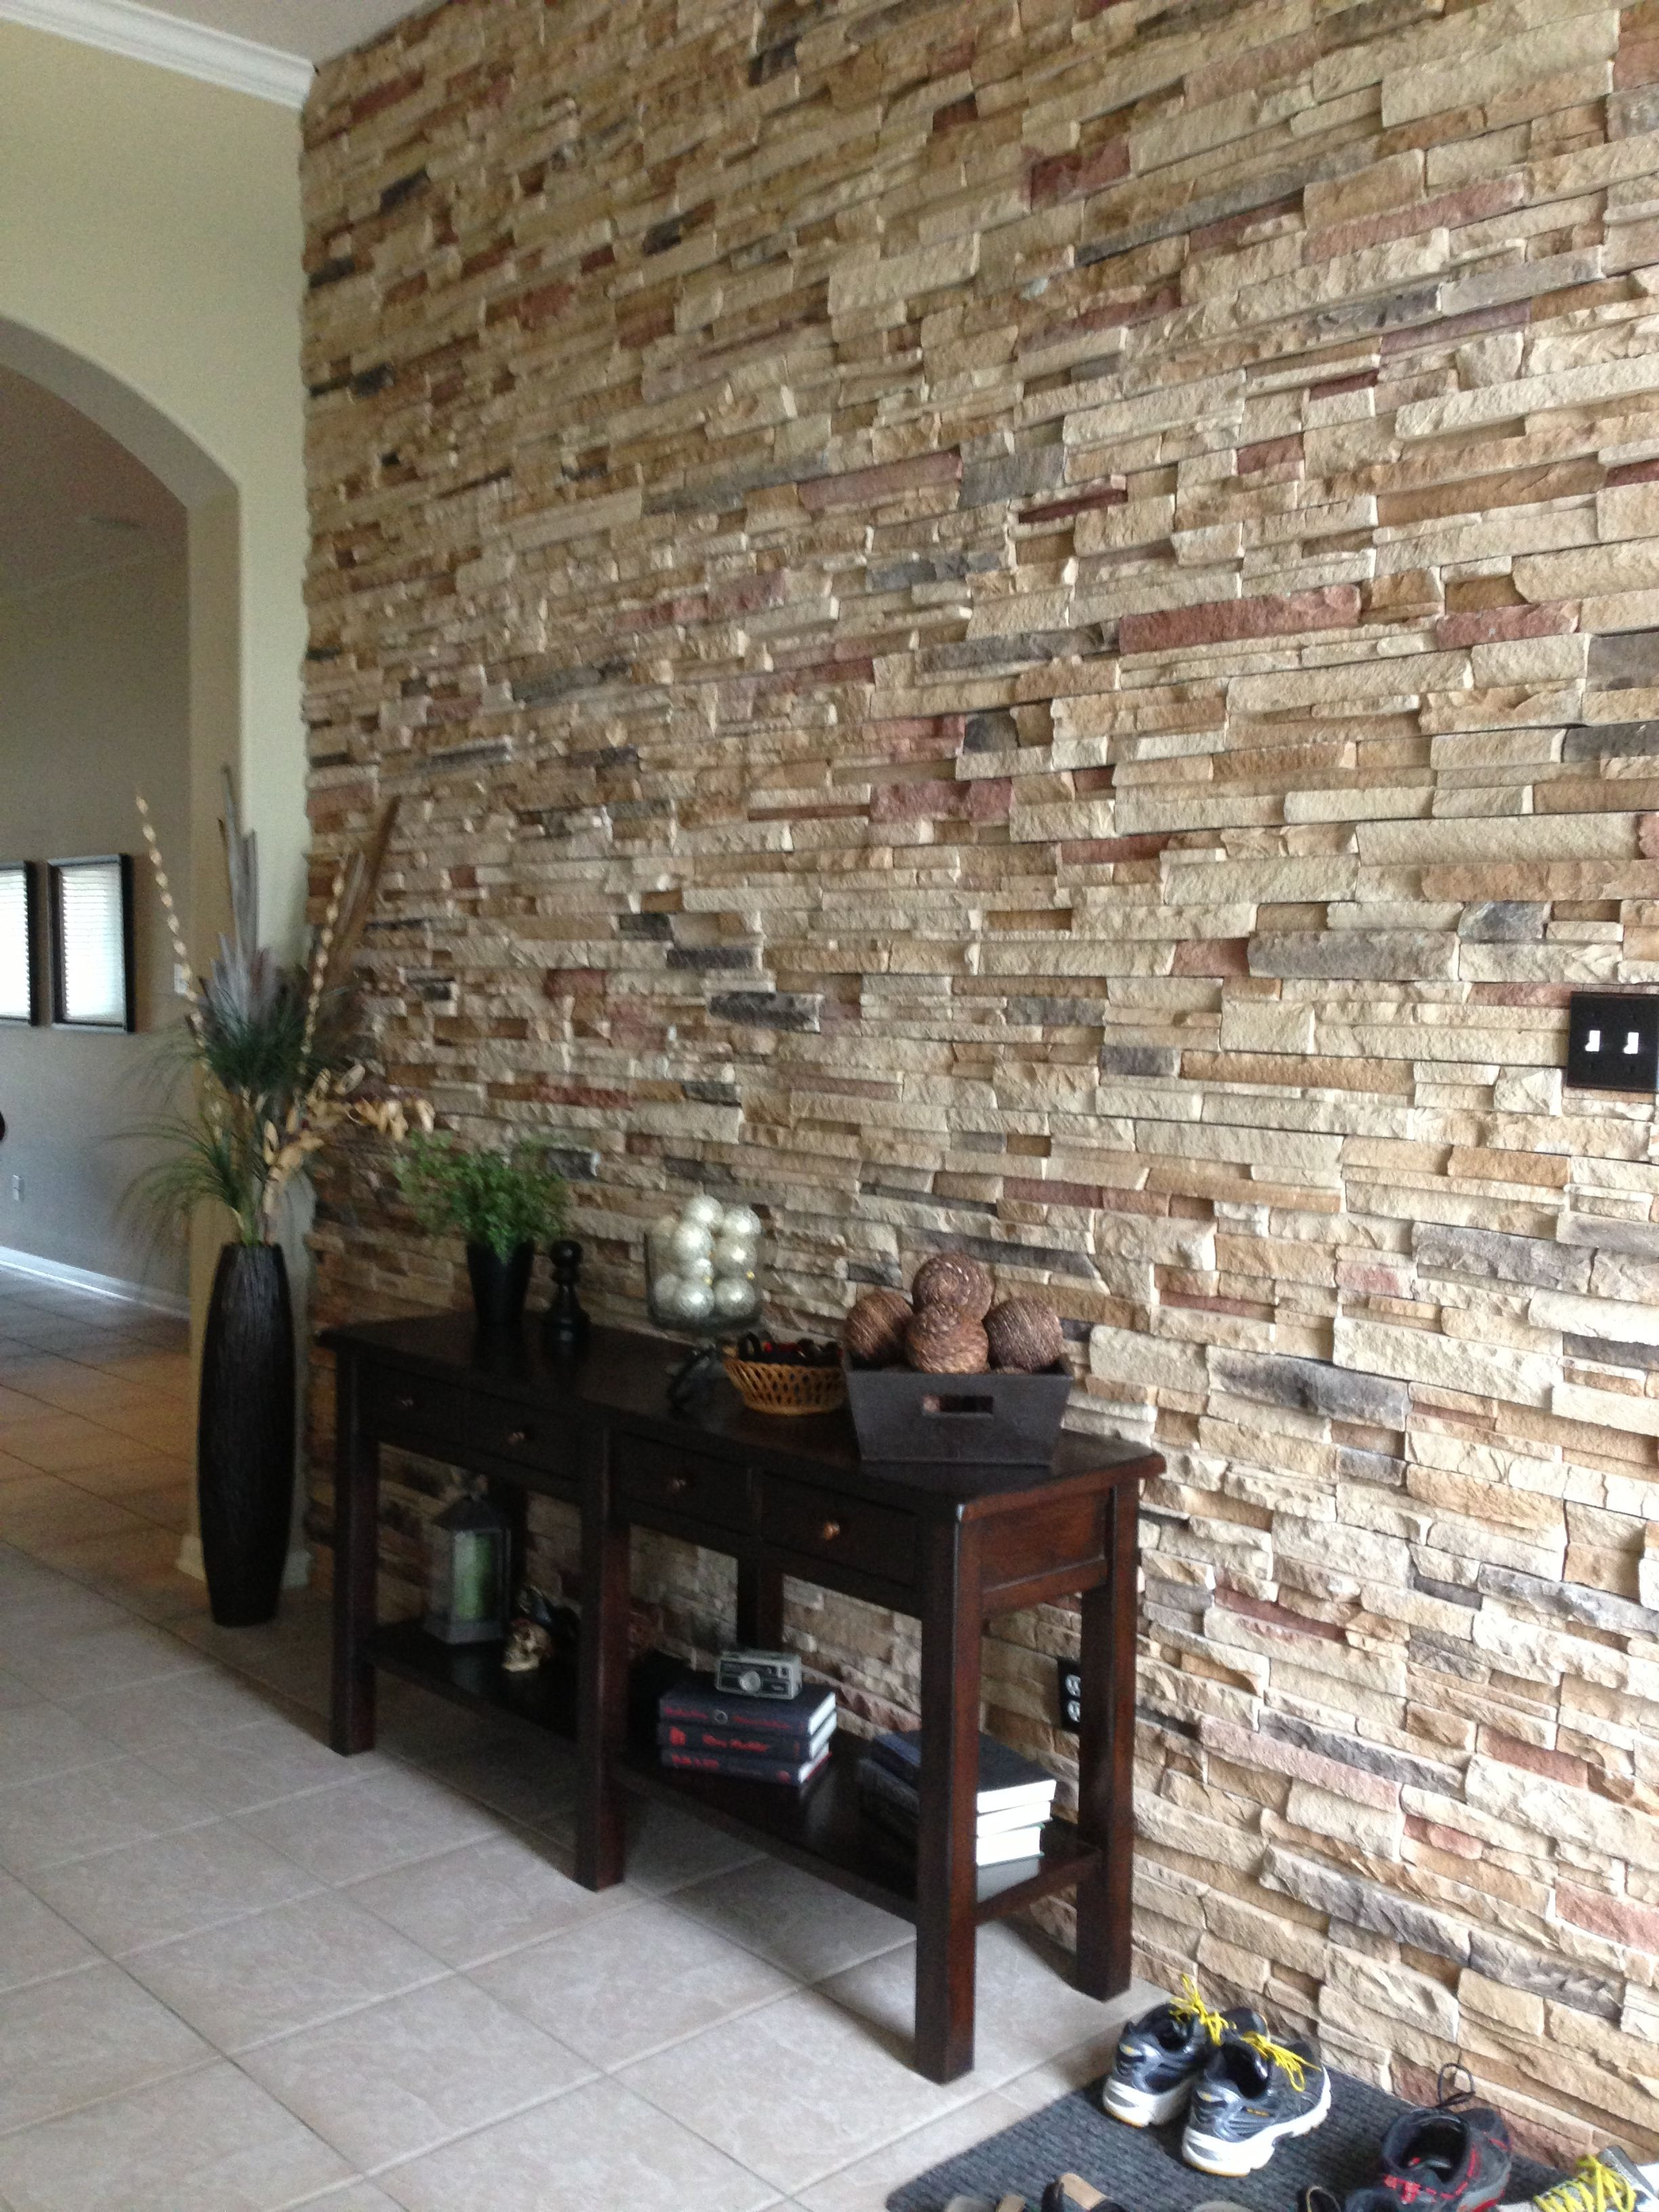 Beautiful California Ledge Stone Wall In The Foyer Of One Of The